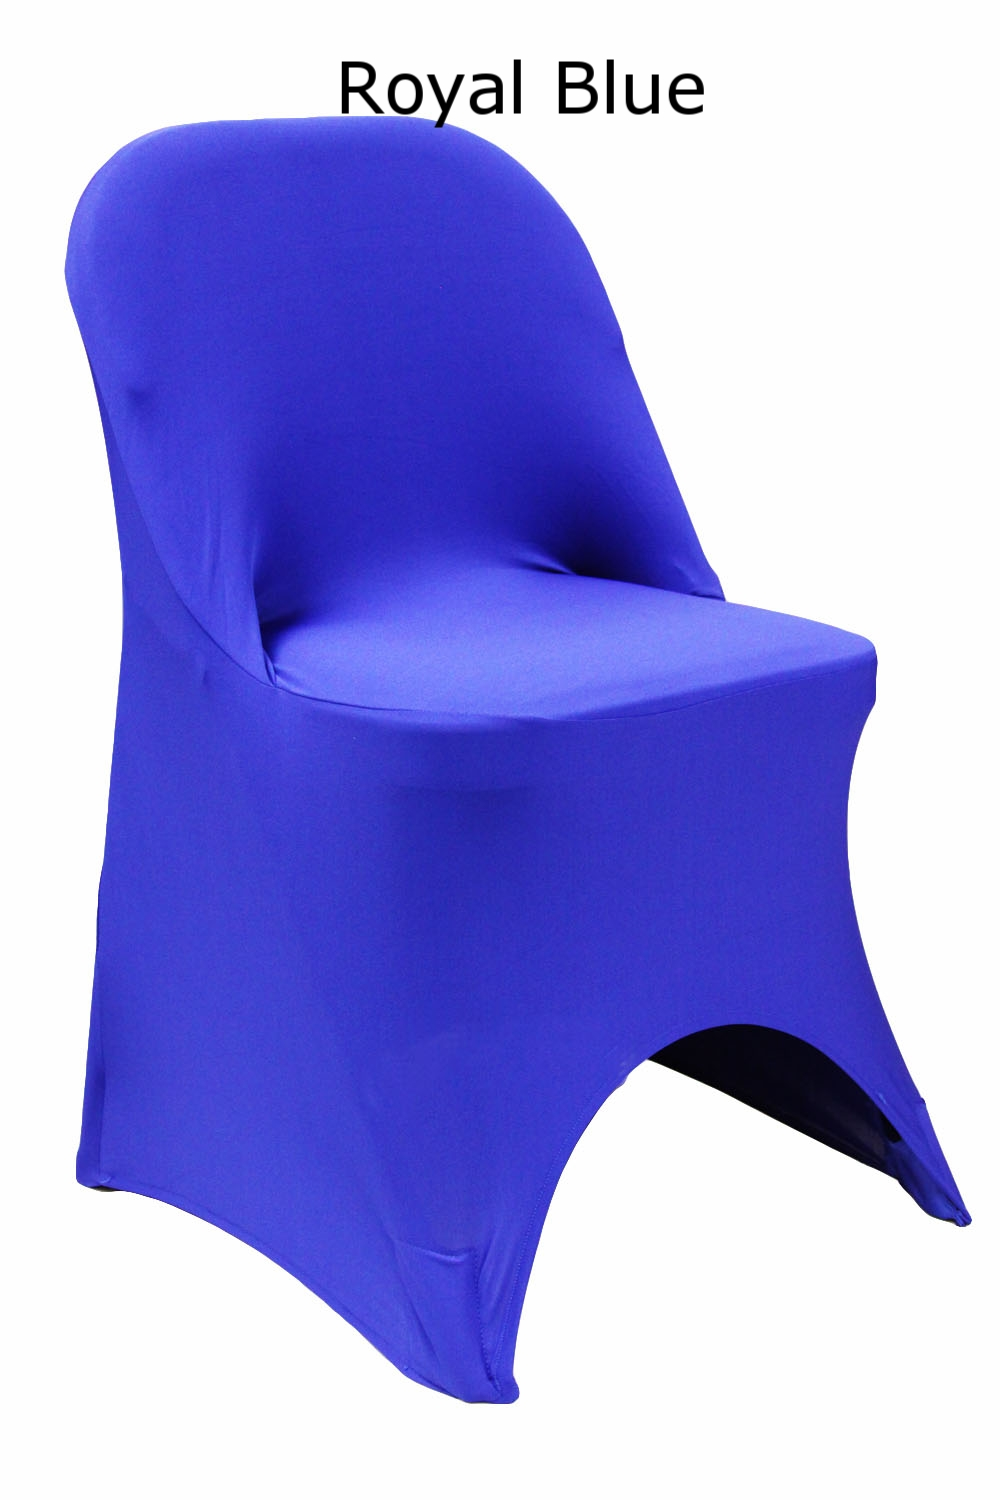 Chair Cover Stretch Royal Blue.jpg